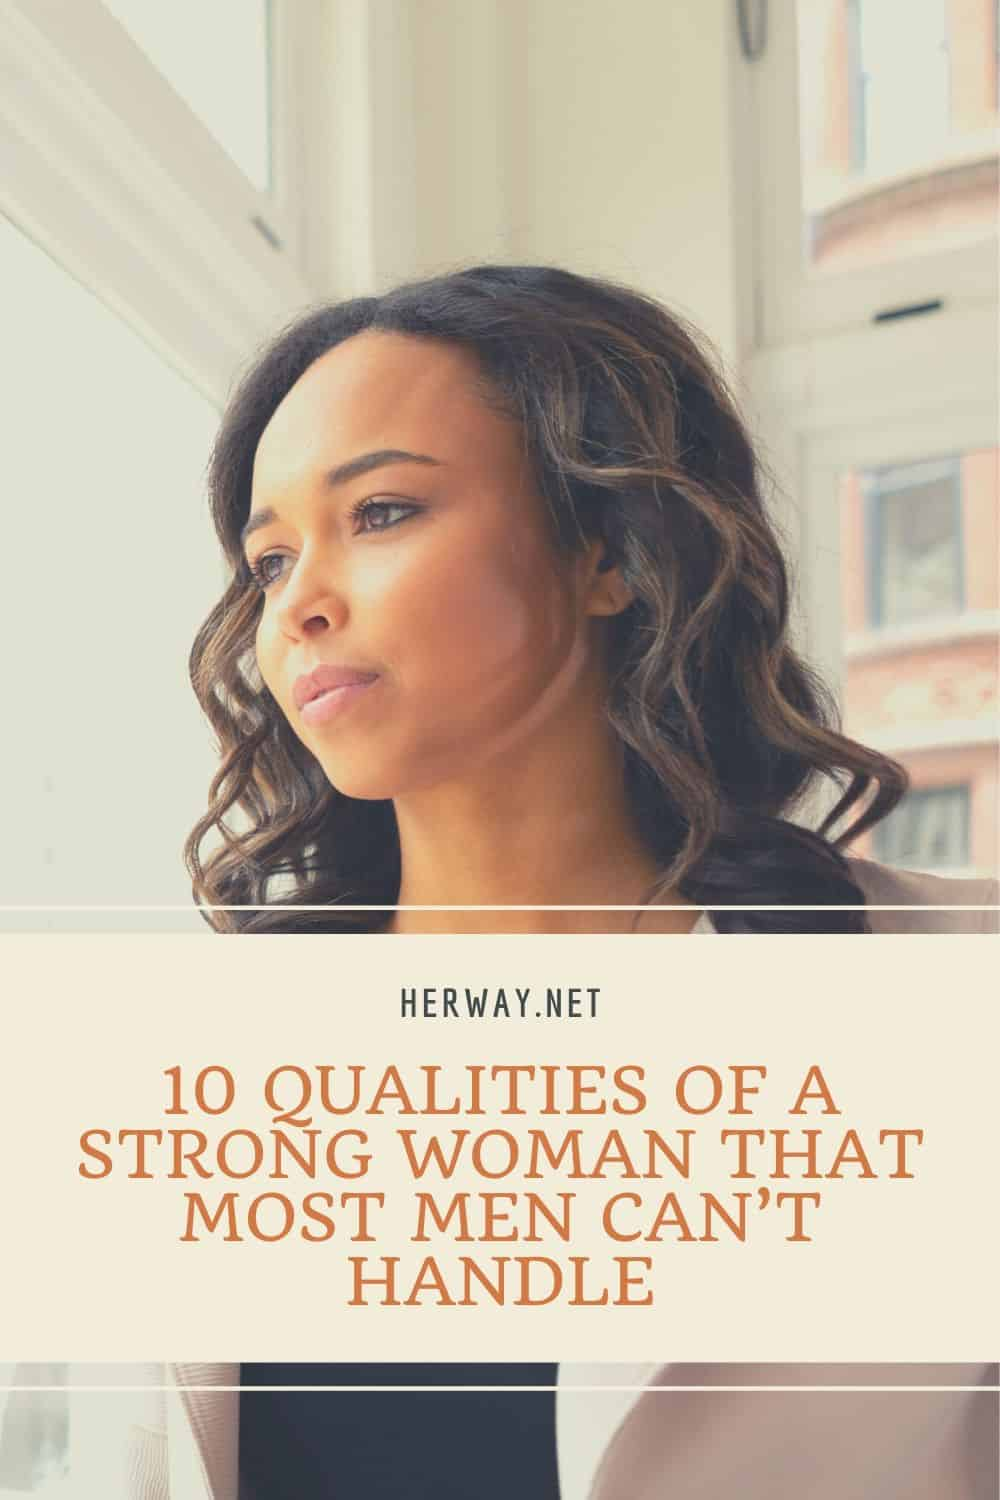 10 QUALITIES OF A STRONG WOMAN